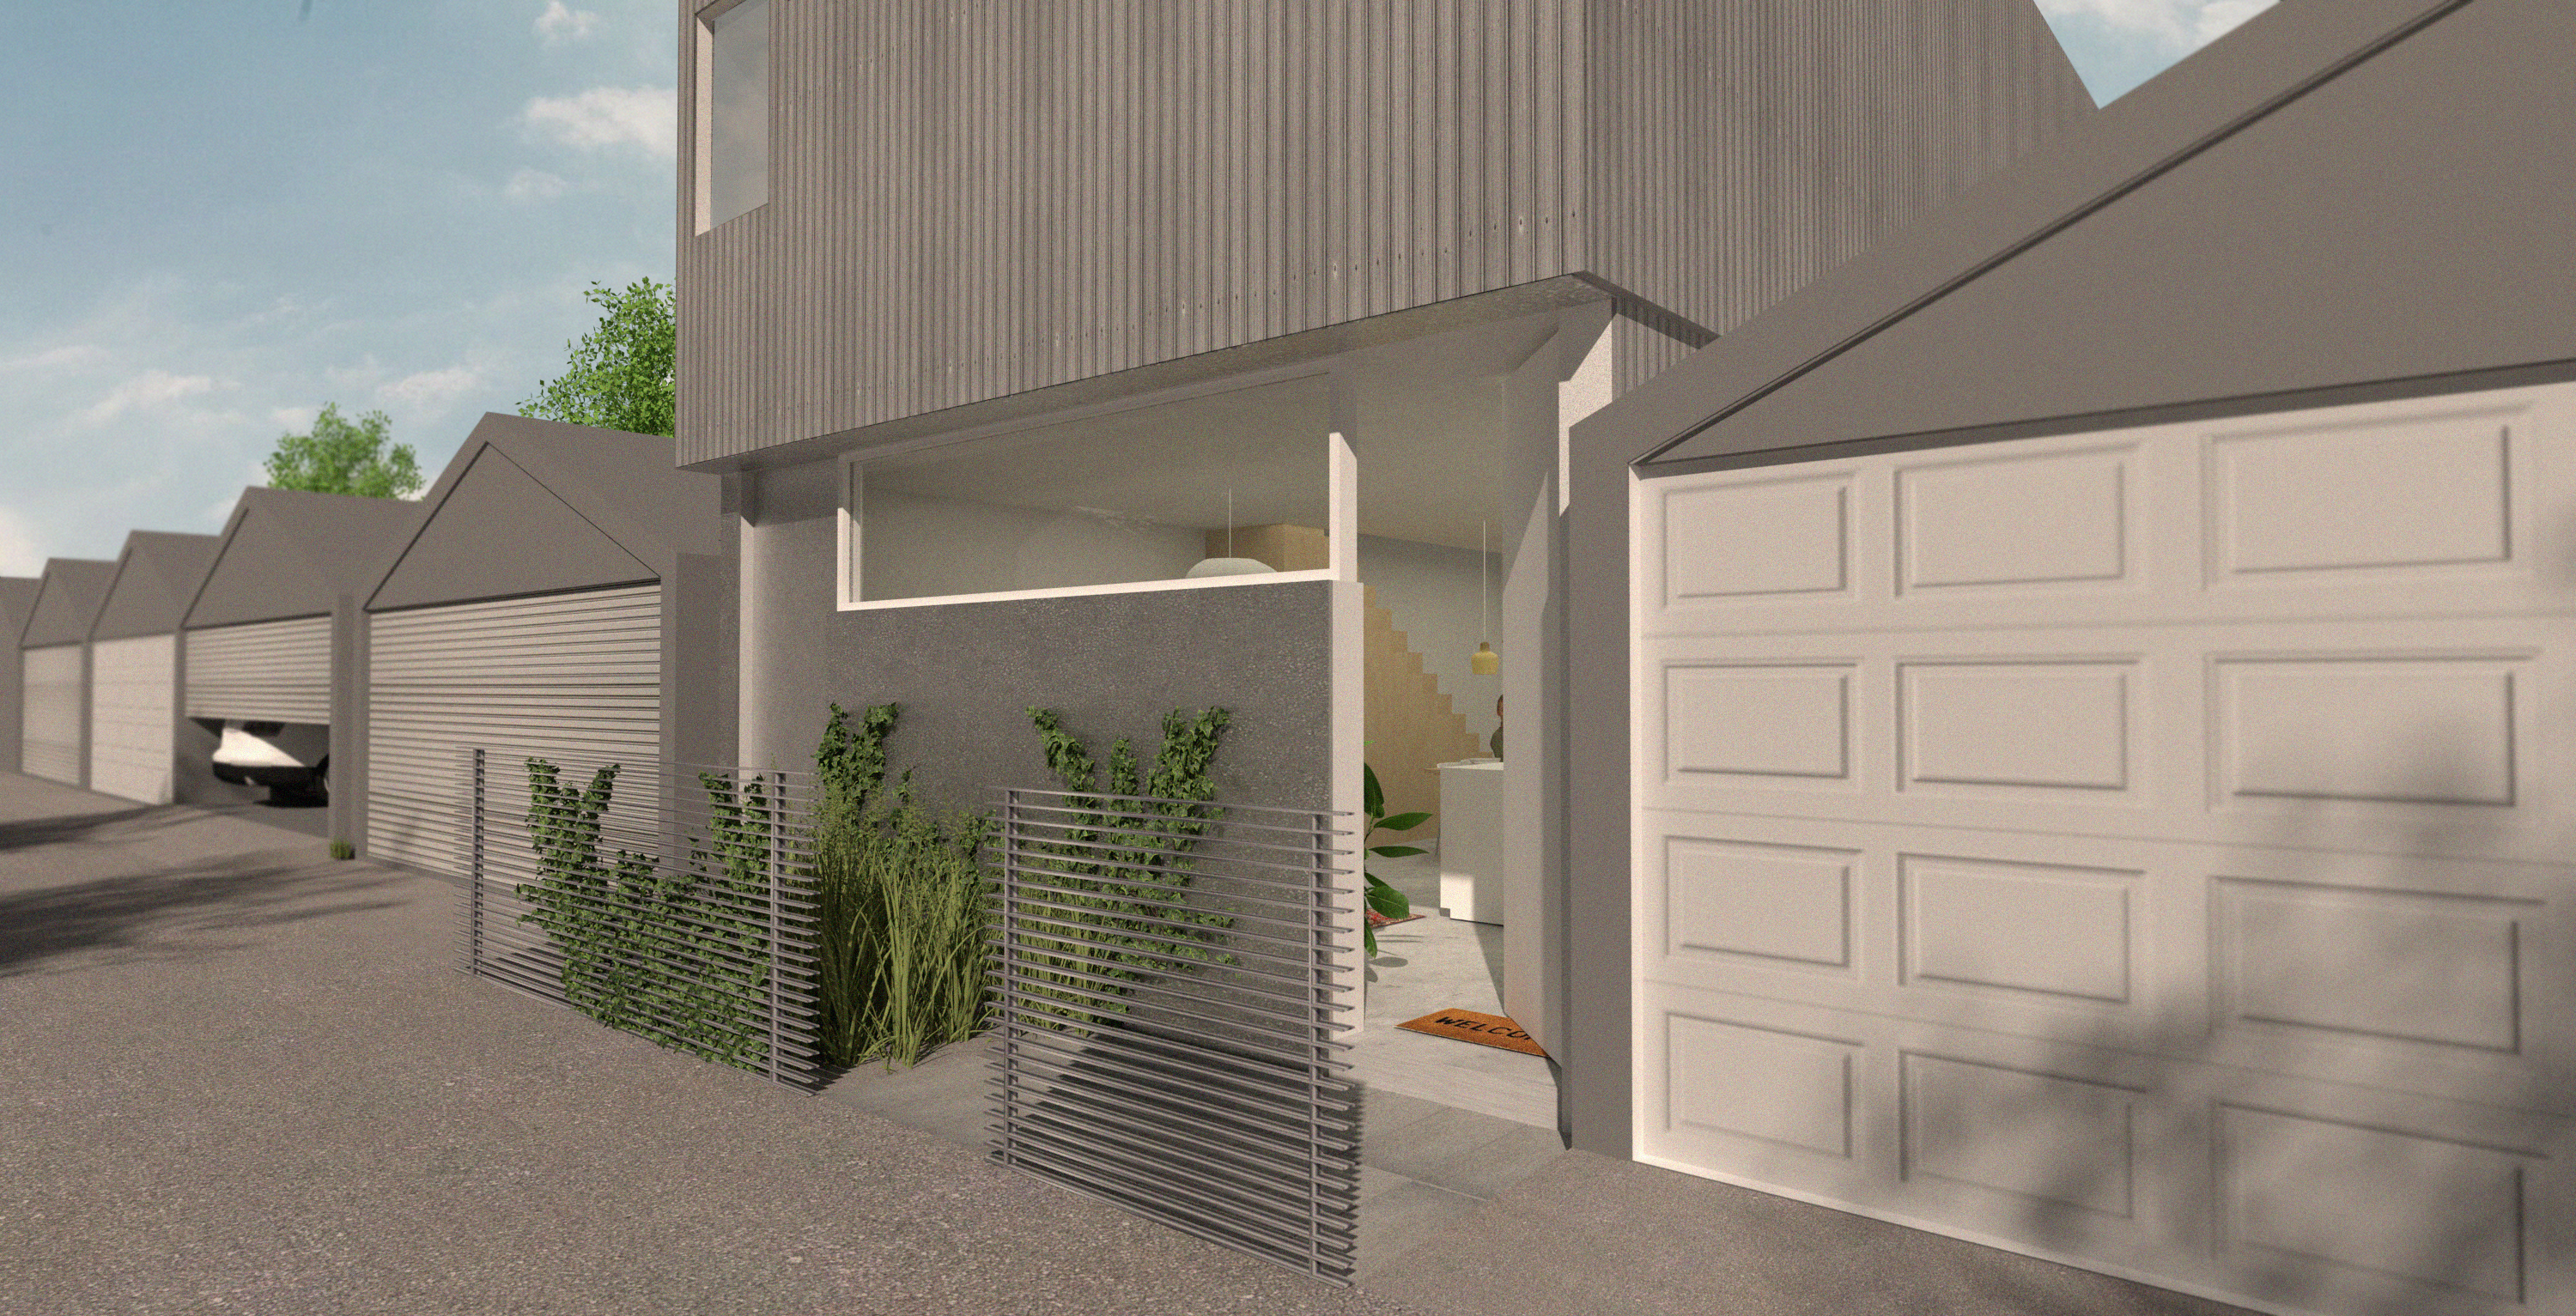 Exterior Rendering - From Lane